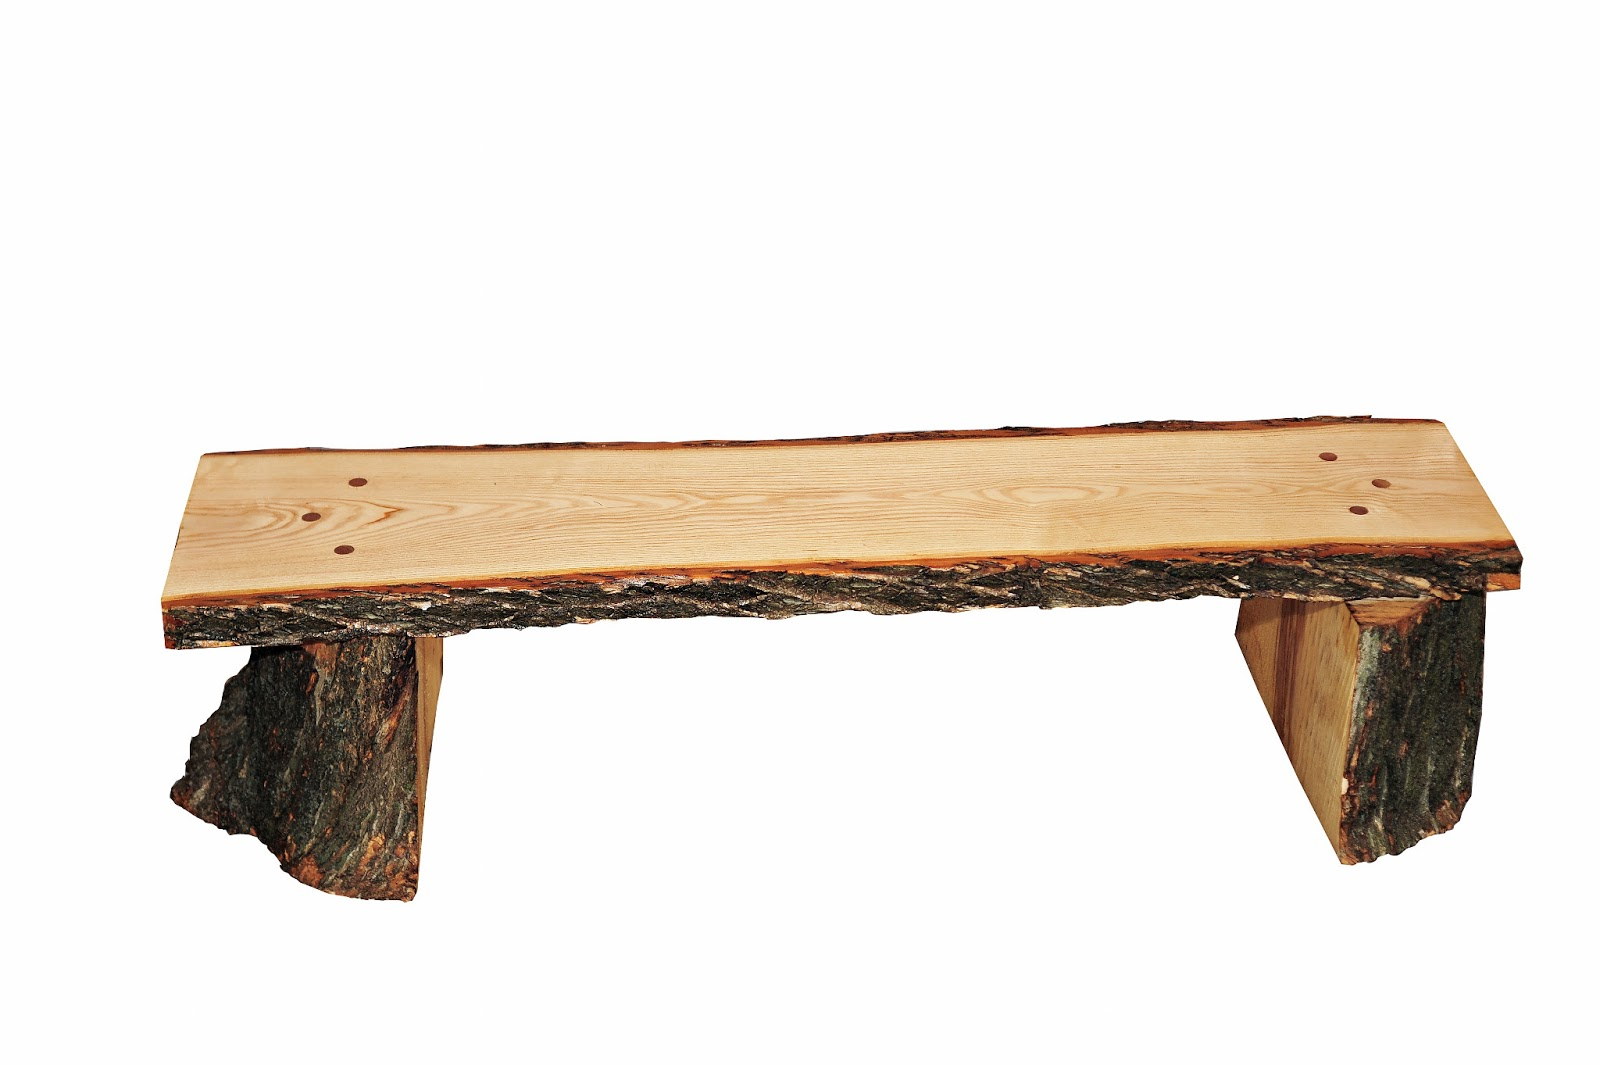 Marvelous photograph of  Tree Removal Waukesha : Wood Furniture Available from Green Man with #A64B25 color and 1600x1065 pixels